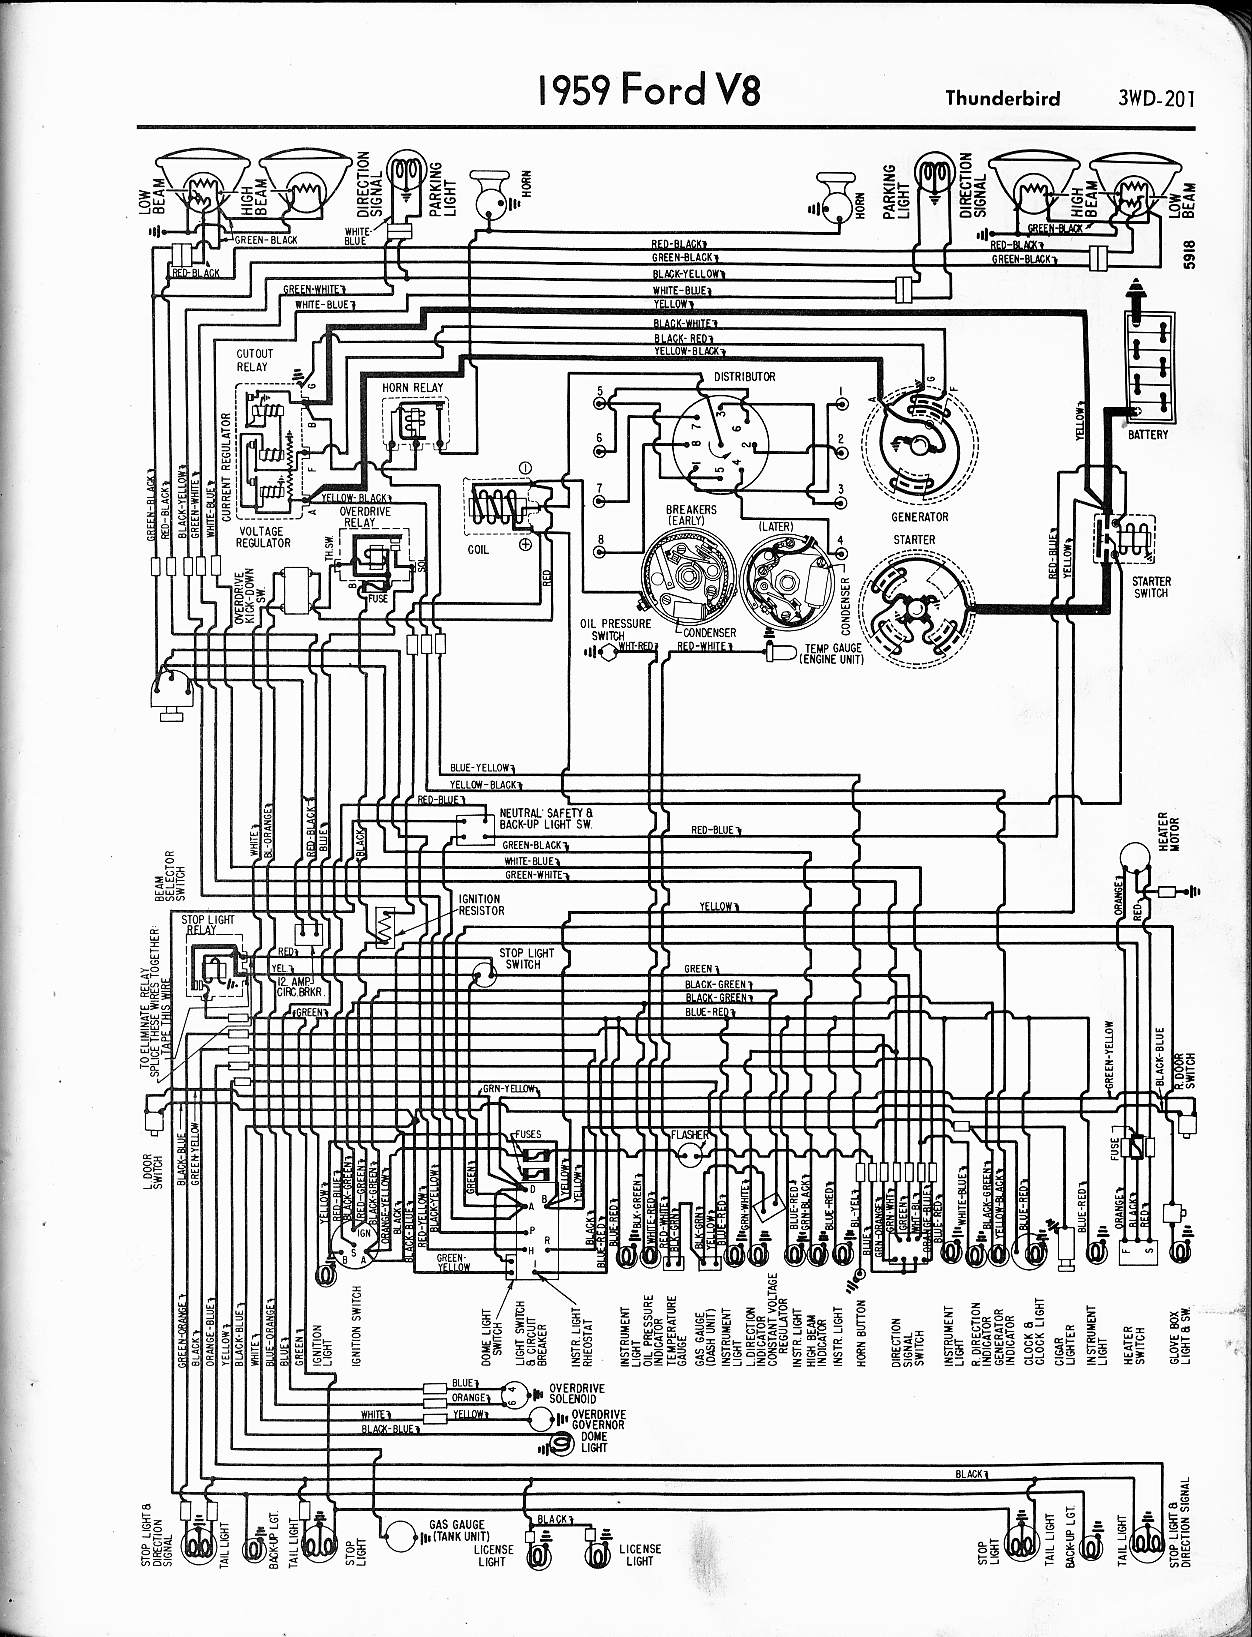 ford falcon 170 engine diagram likewise gas club car wiring diagram rh jadecloud co 1970 ford ranchero wiring diagram Ford F100 Radio Wiring Diagram